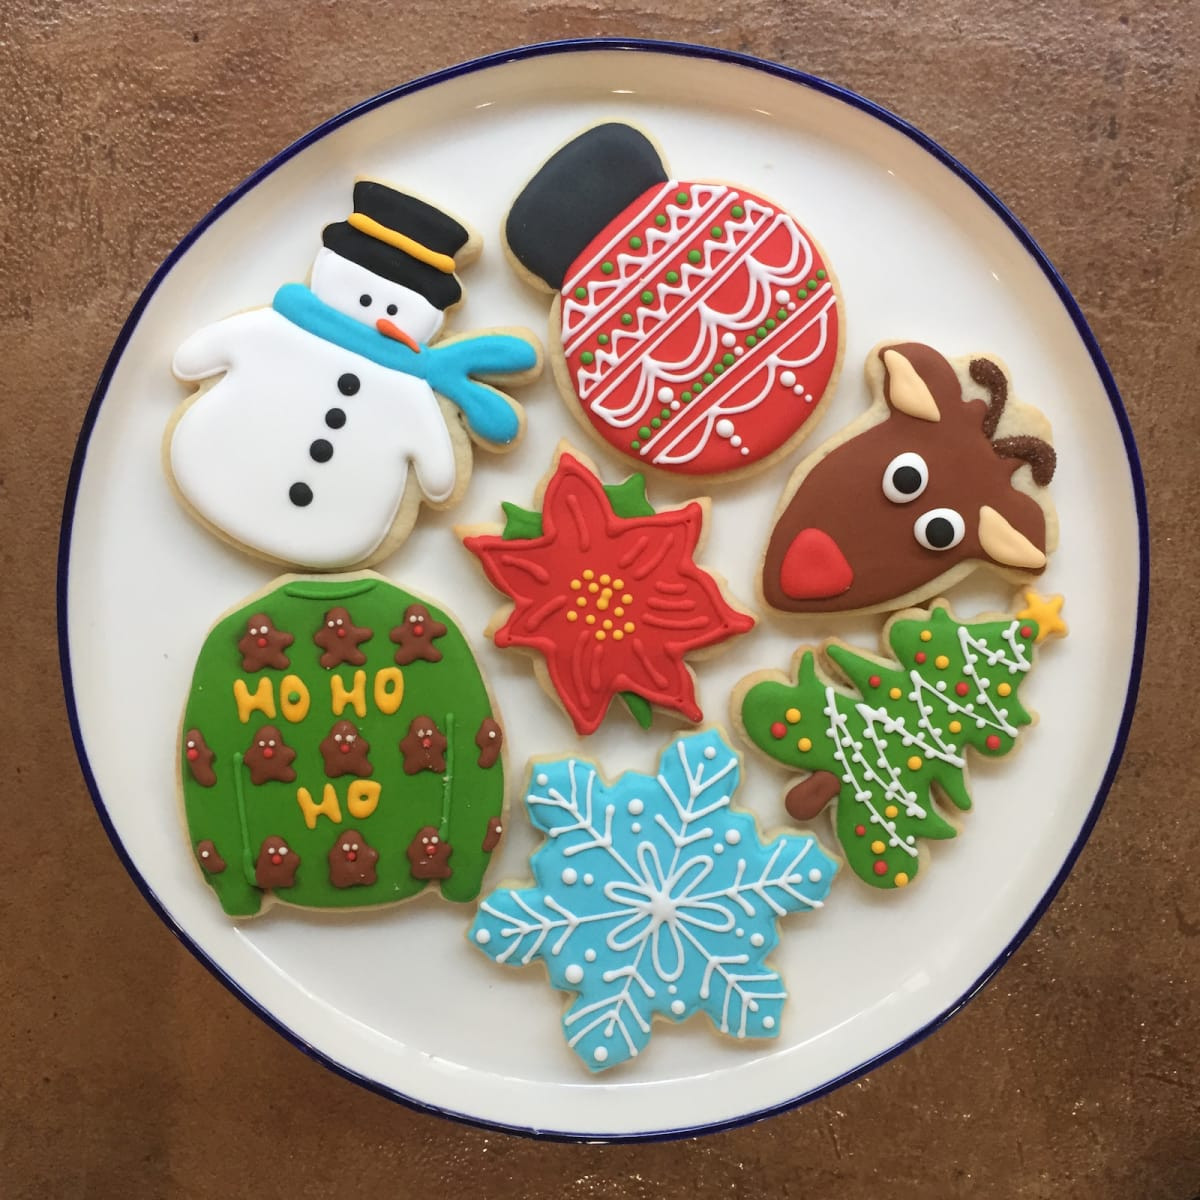 Ugly Christmas Cookies  Ugly sweater cookies are must eat holiday treats from